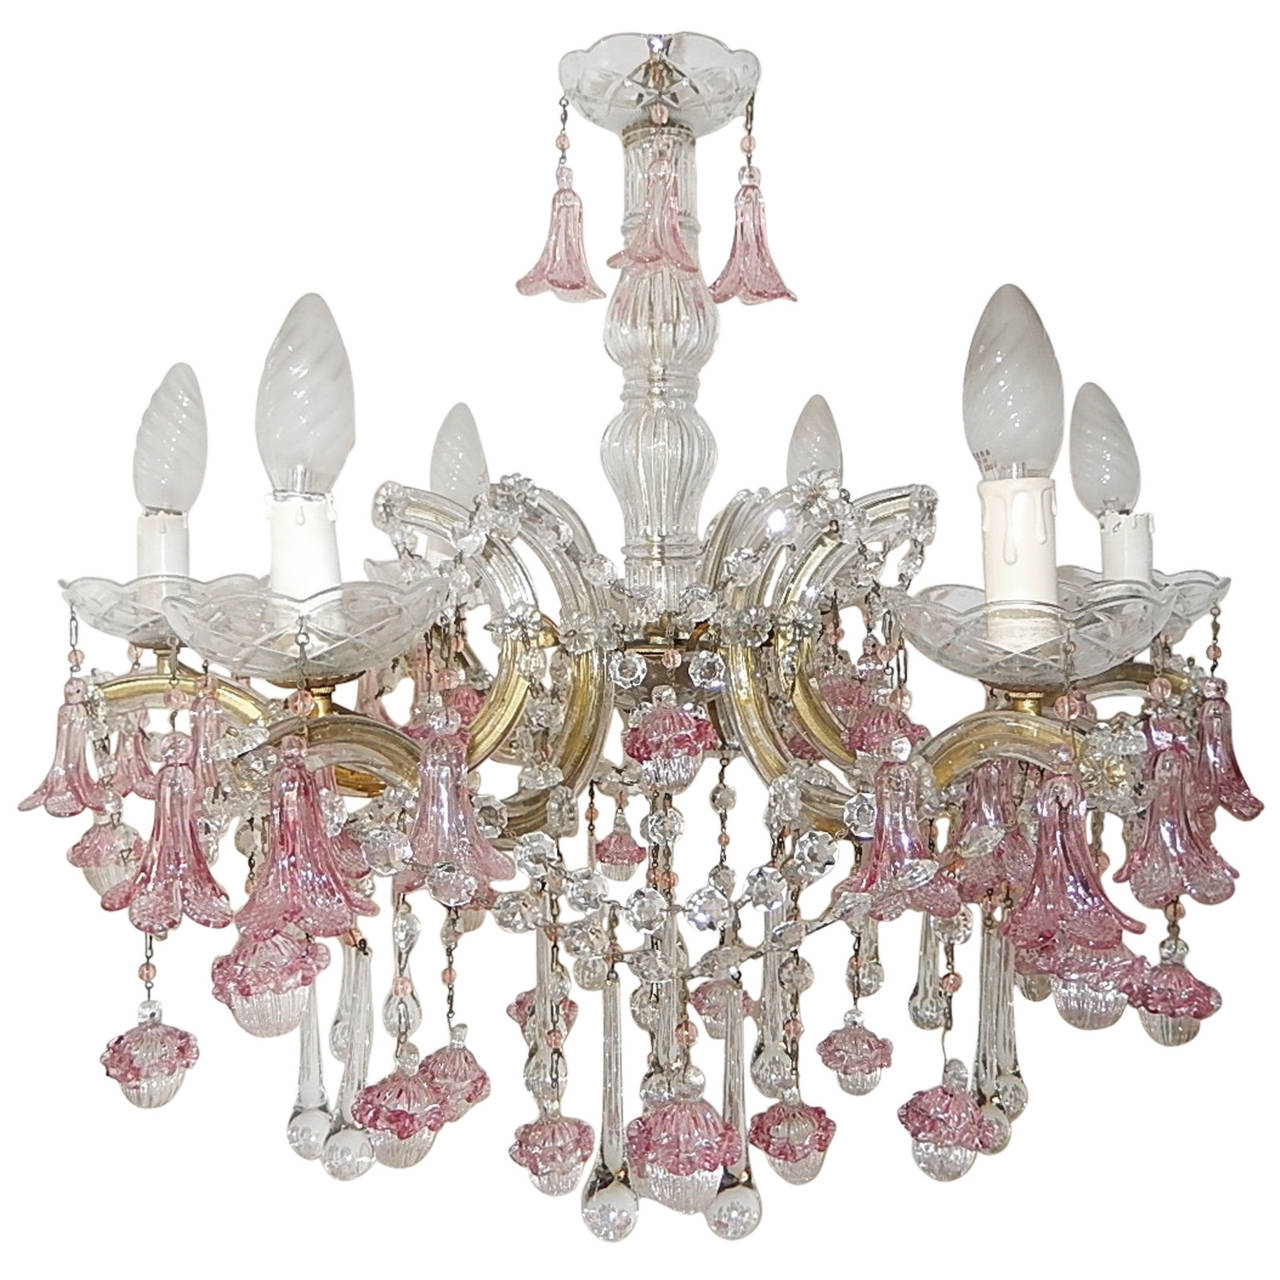 1920 French Fuchsia Murano Flowers And Balls Chandelier At 1stdibs Inside Fuschia Chandelier (View 3 of 15)